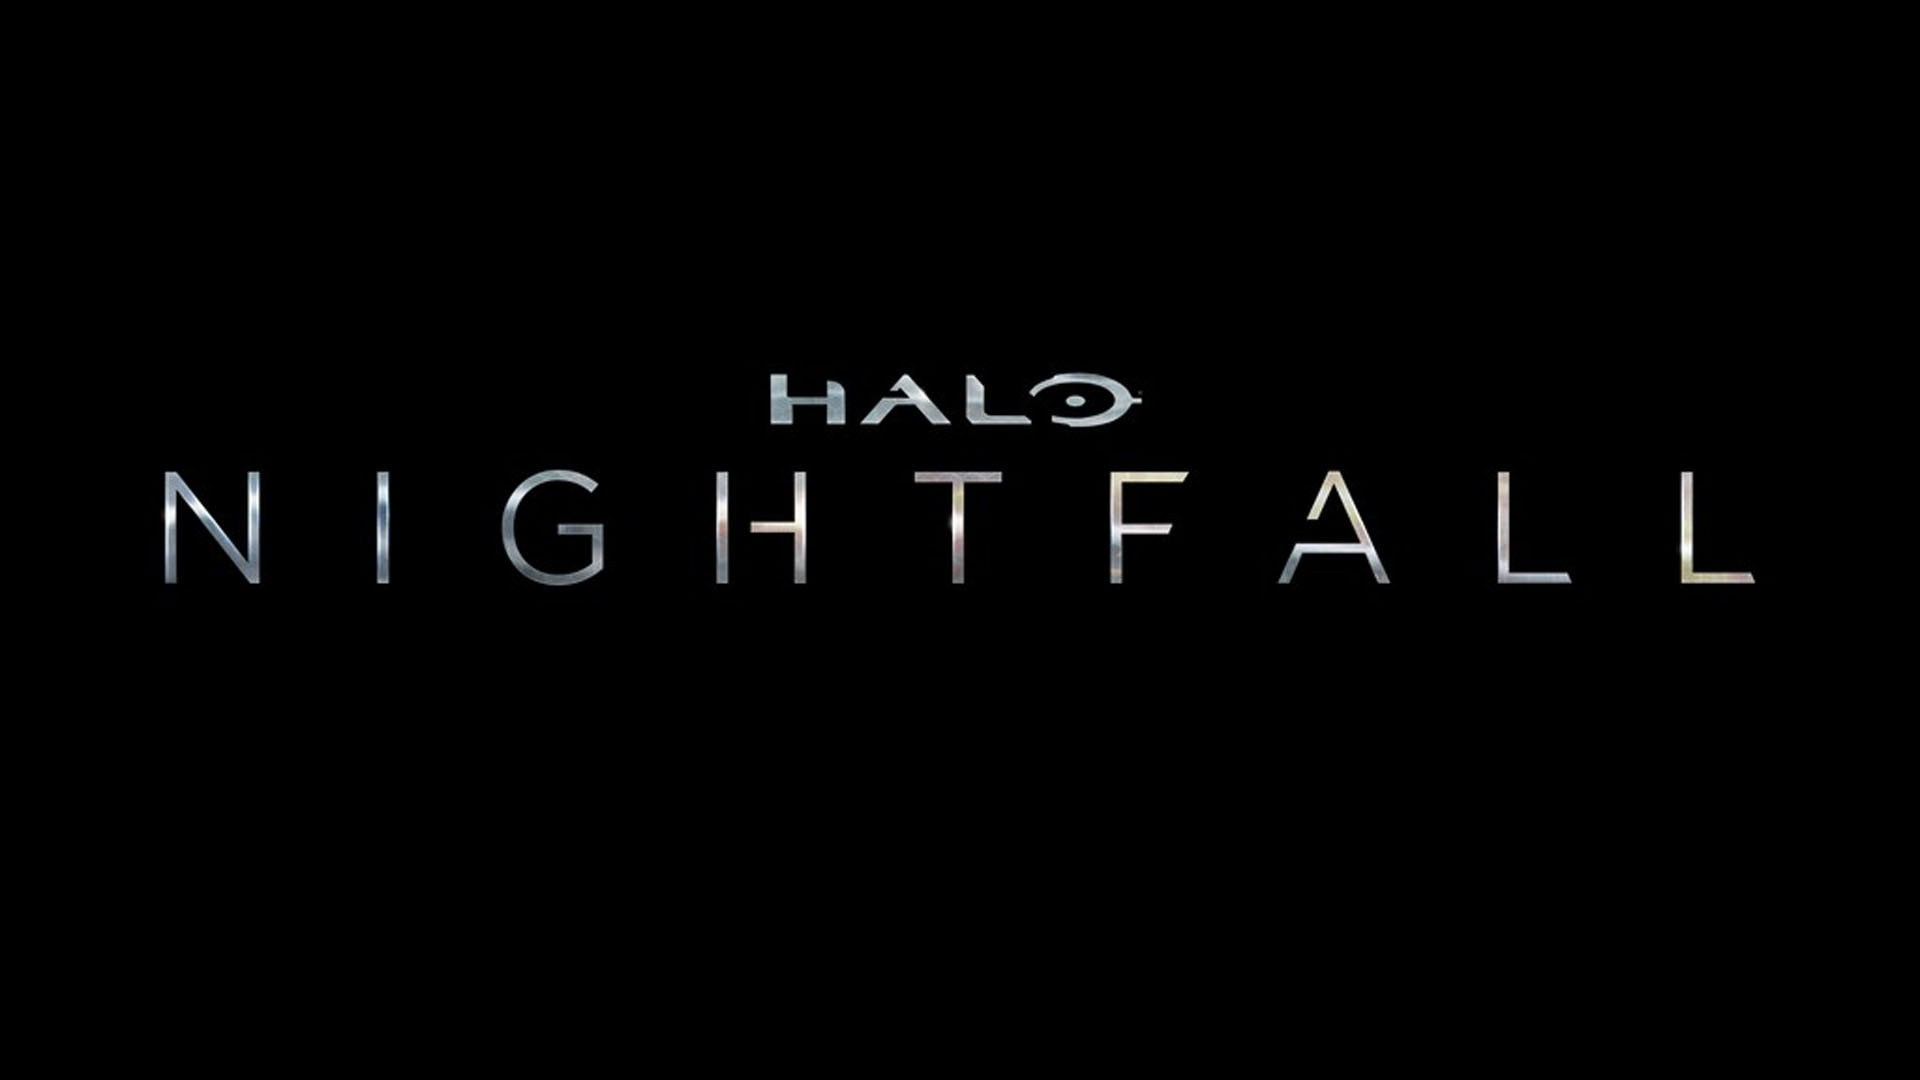 halo nightfall logo wallpaper 47174